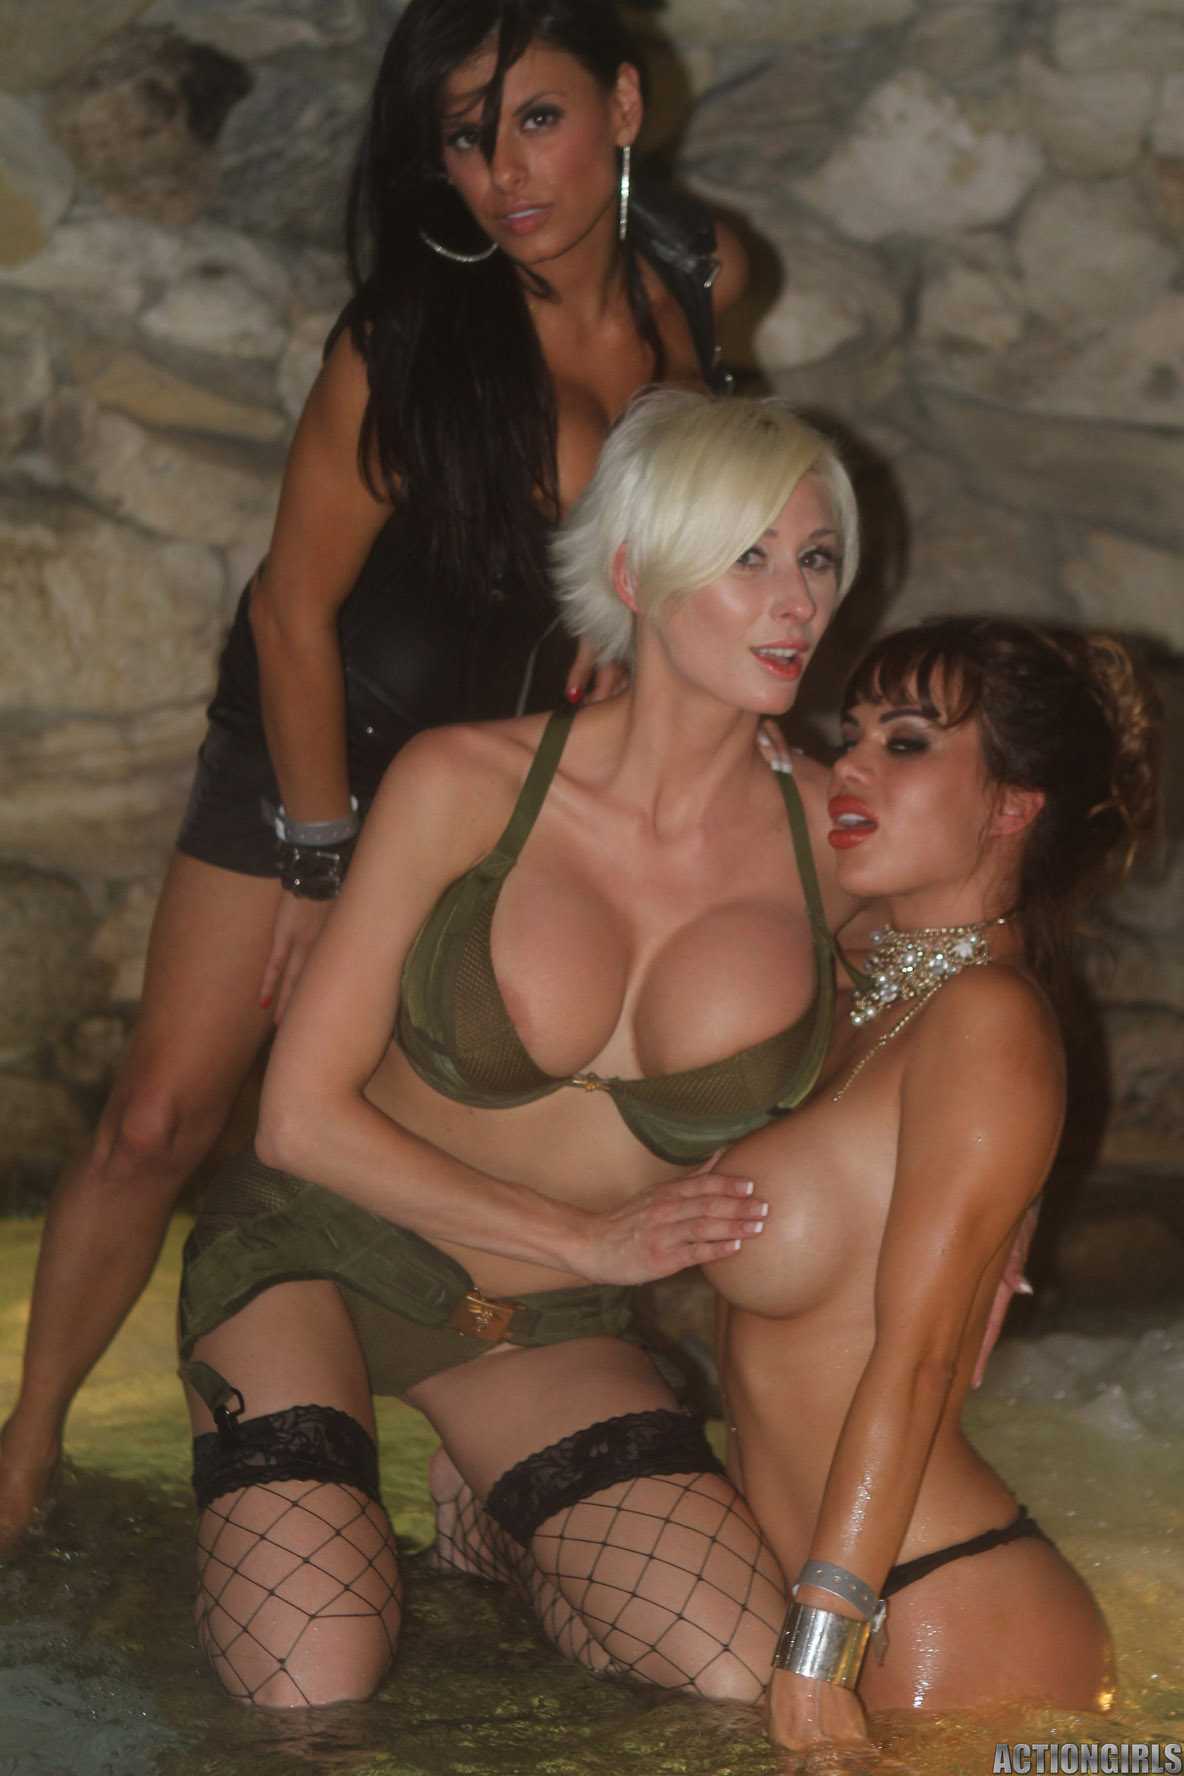 Playboy mansion pussy pics and videos hentia scenes